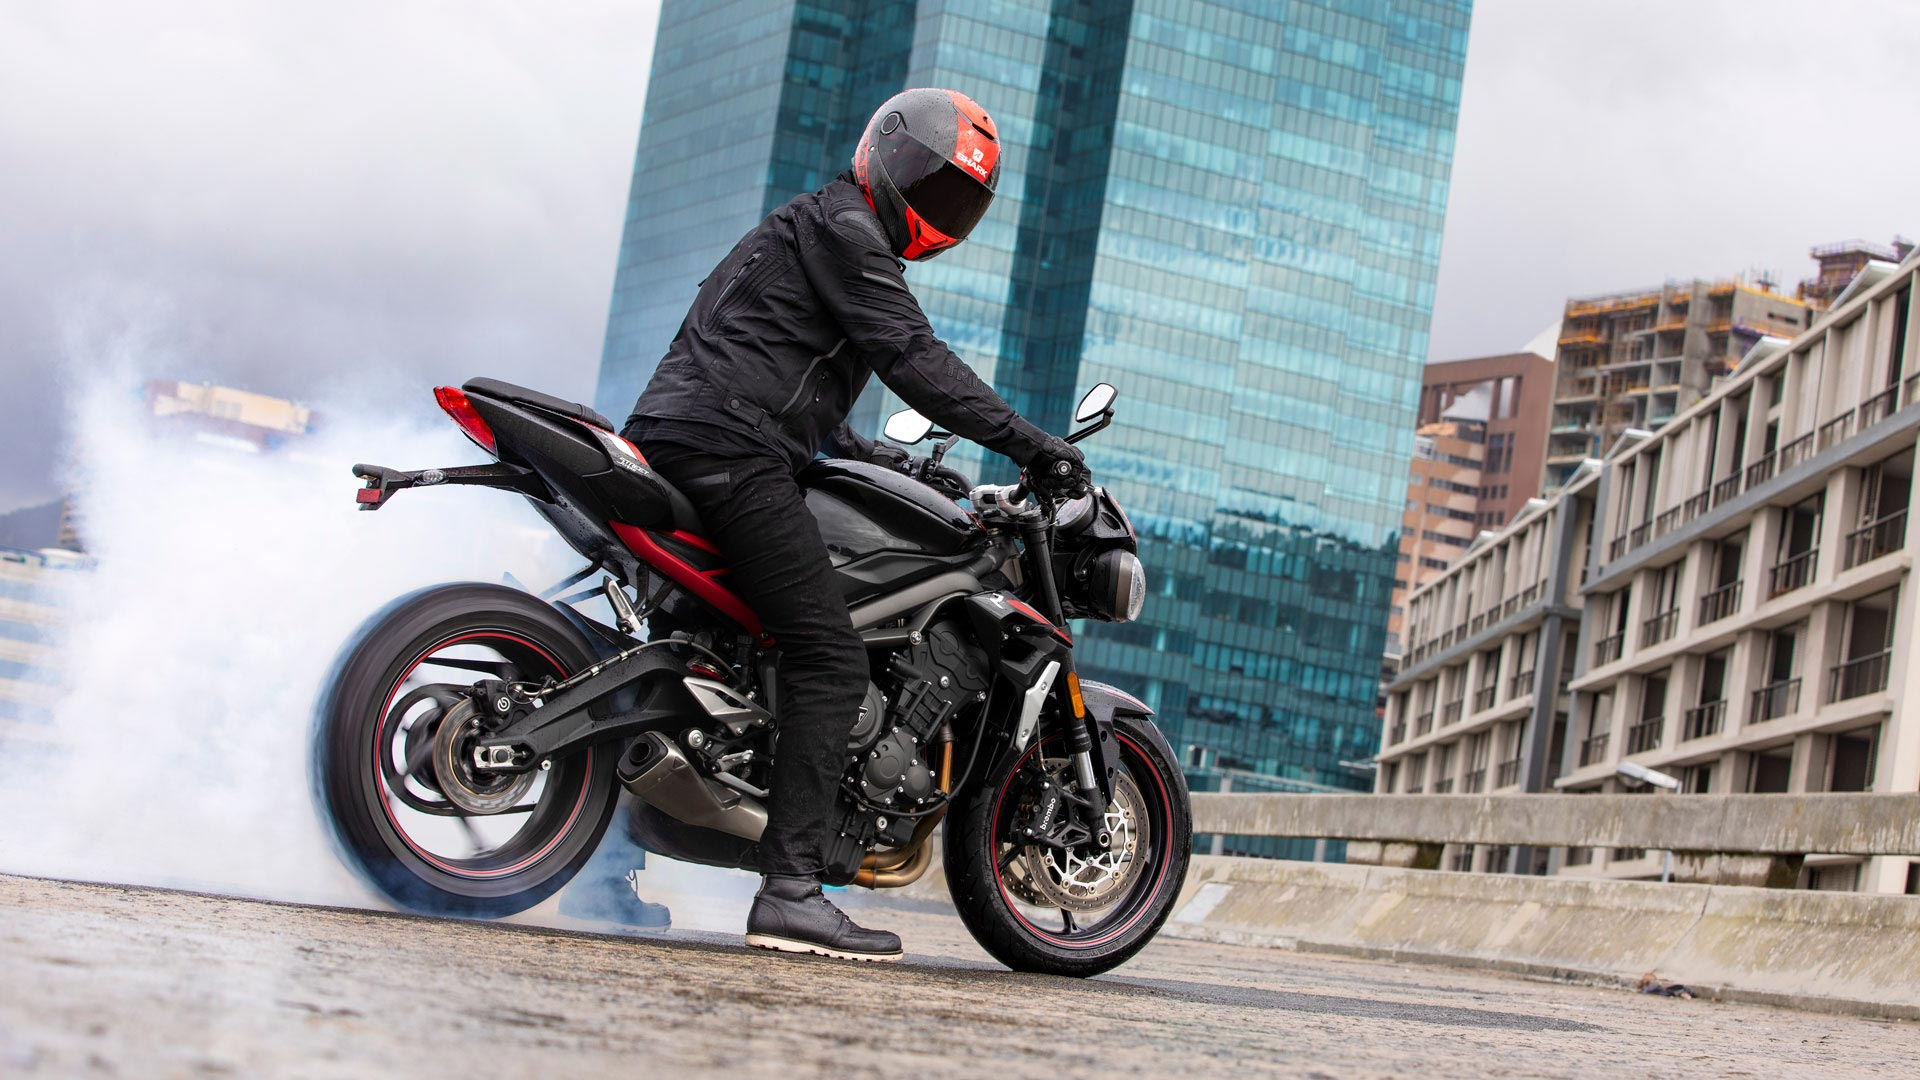 Street-Triple-R-Variant-Page---Gallery-1-1920x1080px